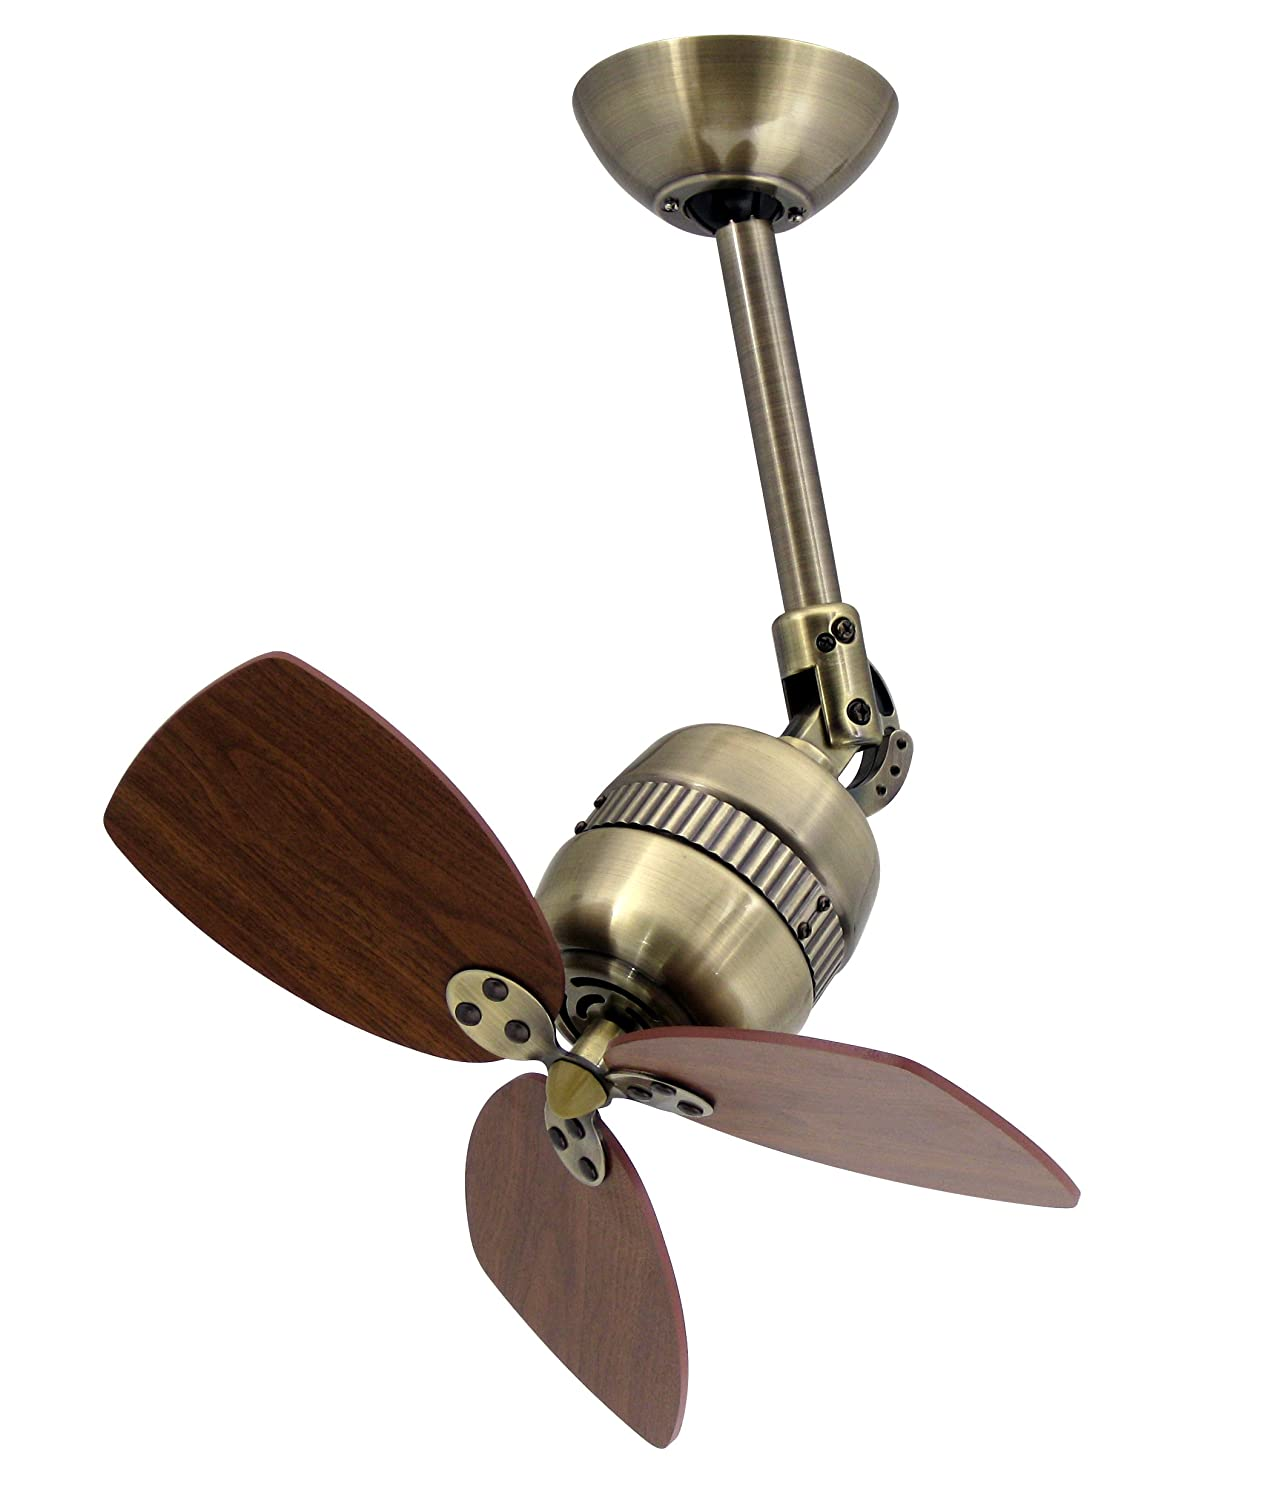 Ceiling Fan Propeller Toledo in Antique Brass with Wall Control, Blades Walnut AireRyder FN11146